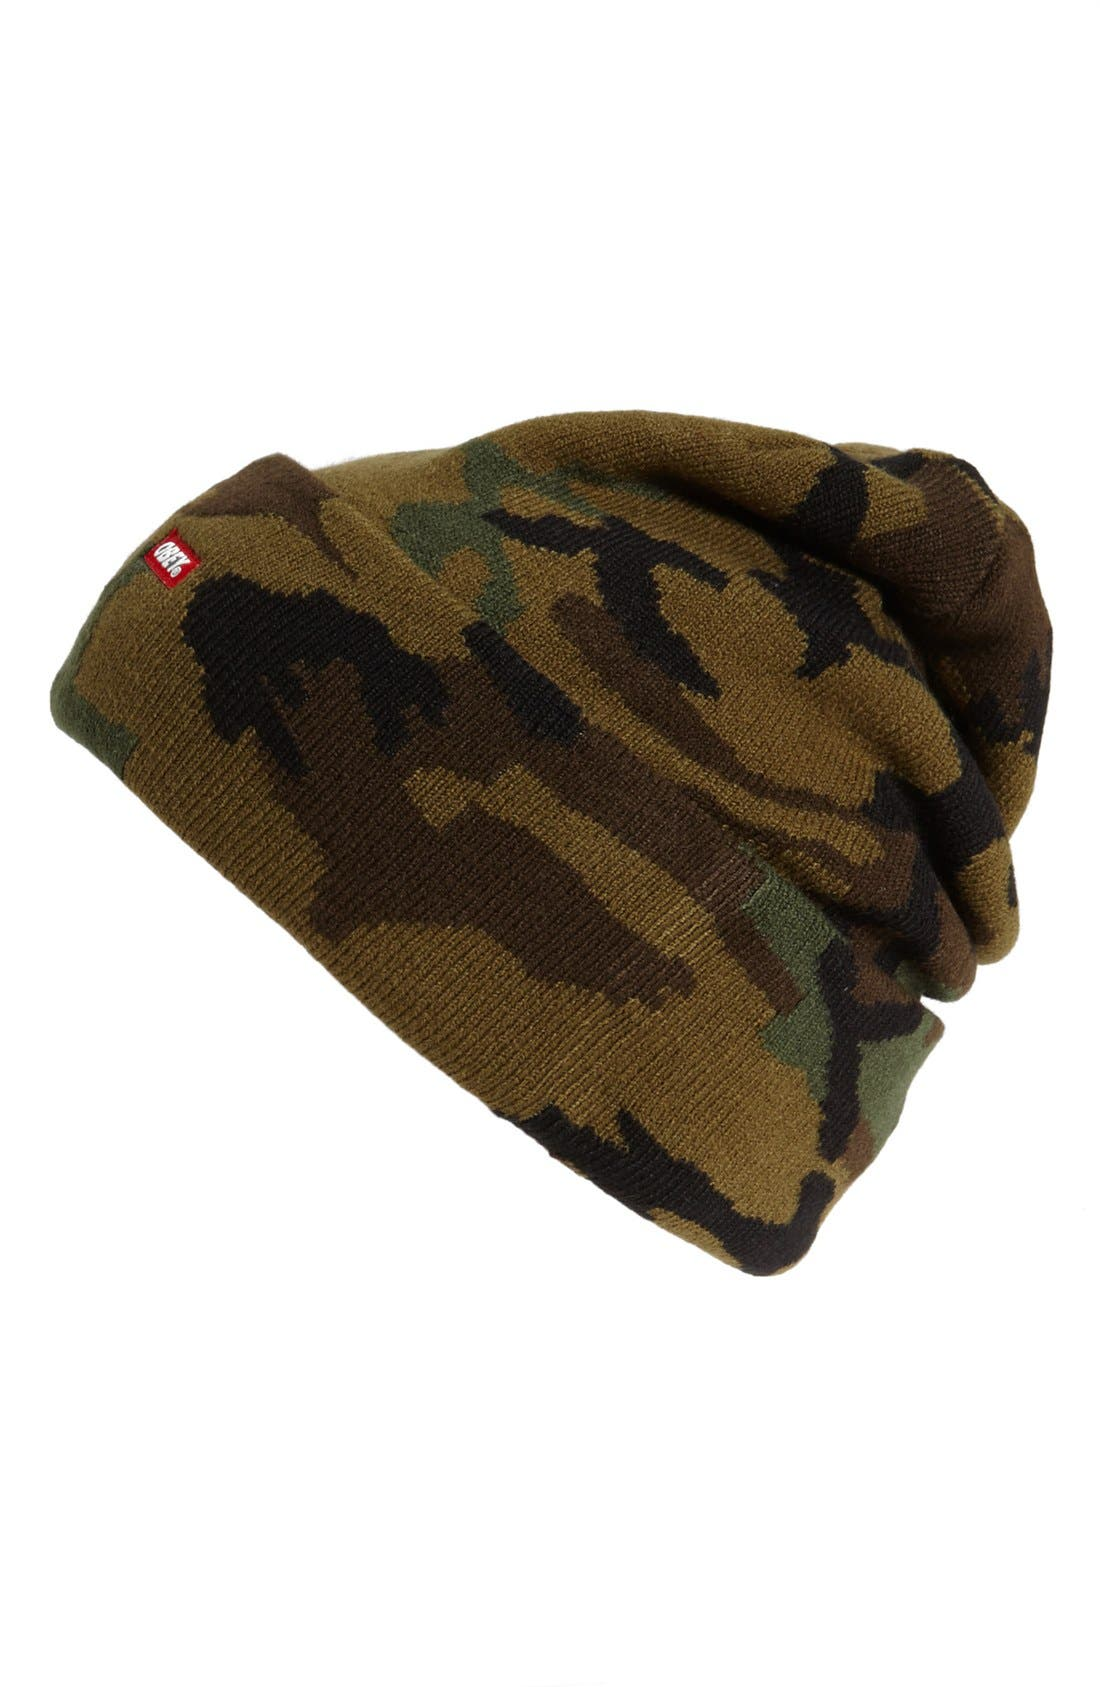 Alternate Image 1 Selected - Obey 'Infantry' Beanie